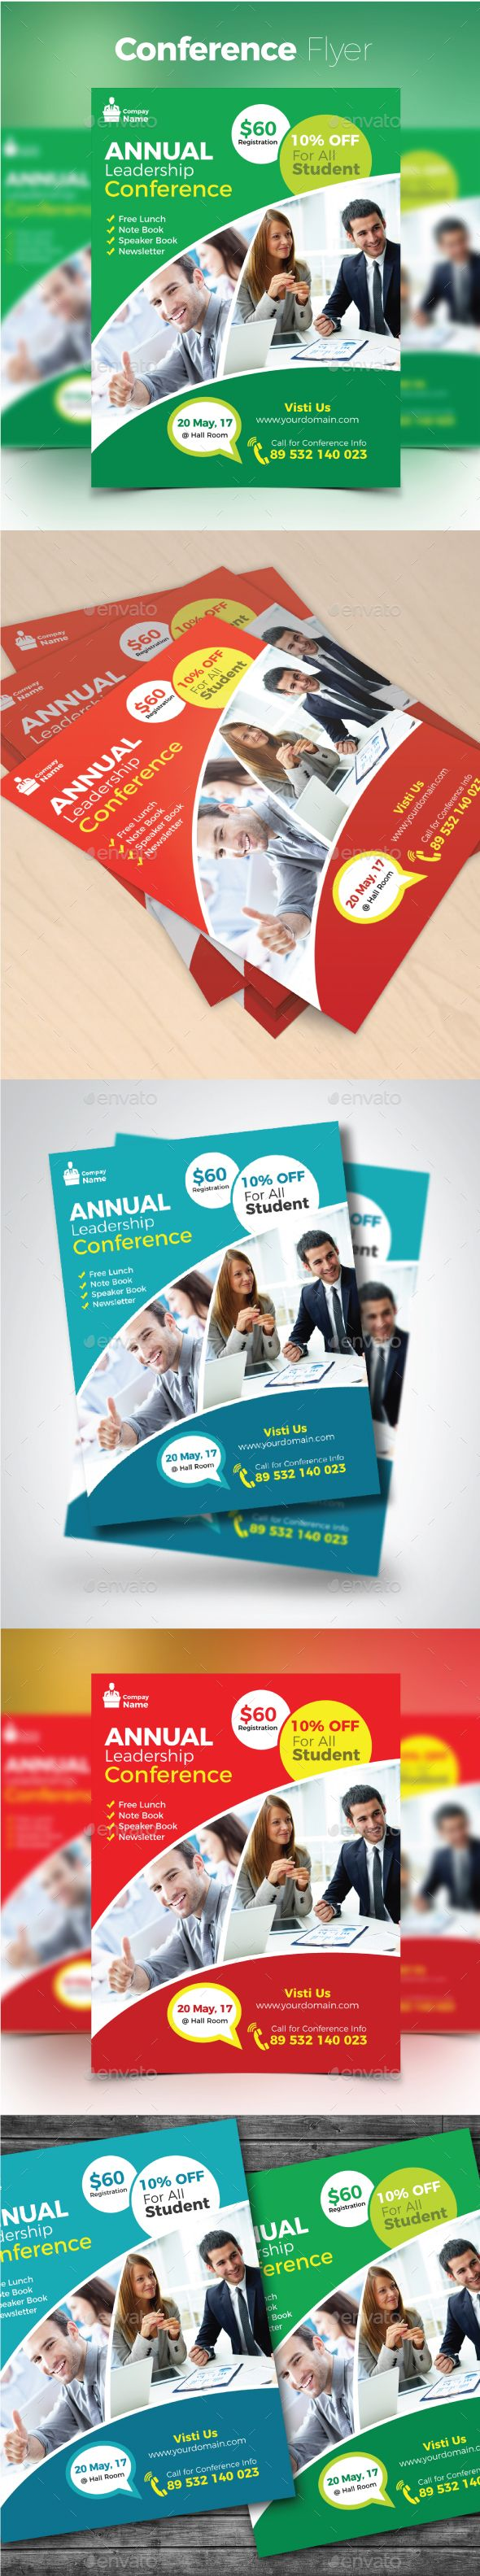 Conference Flyer Template Vector EPS AI Illustrator Flyer - Illustrator brochure template